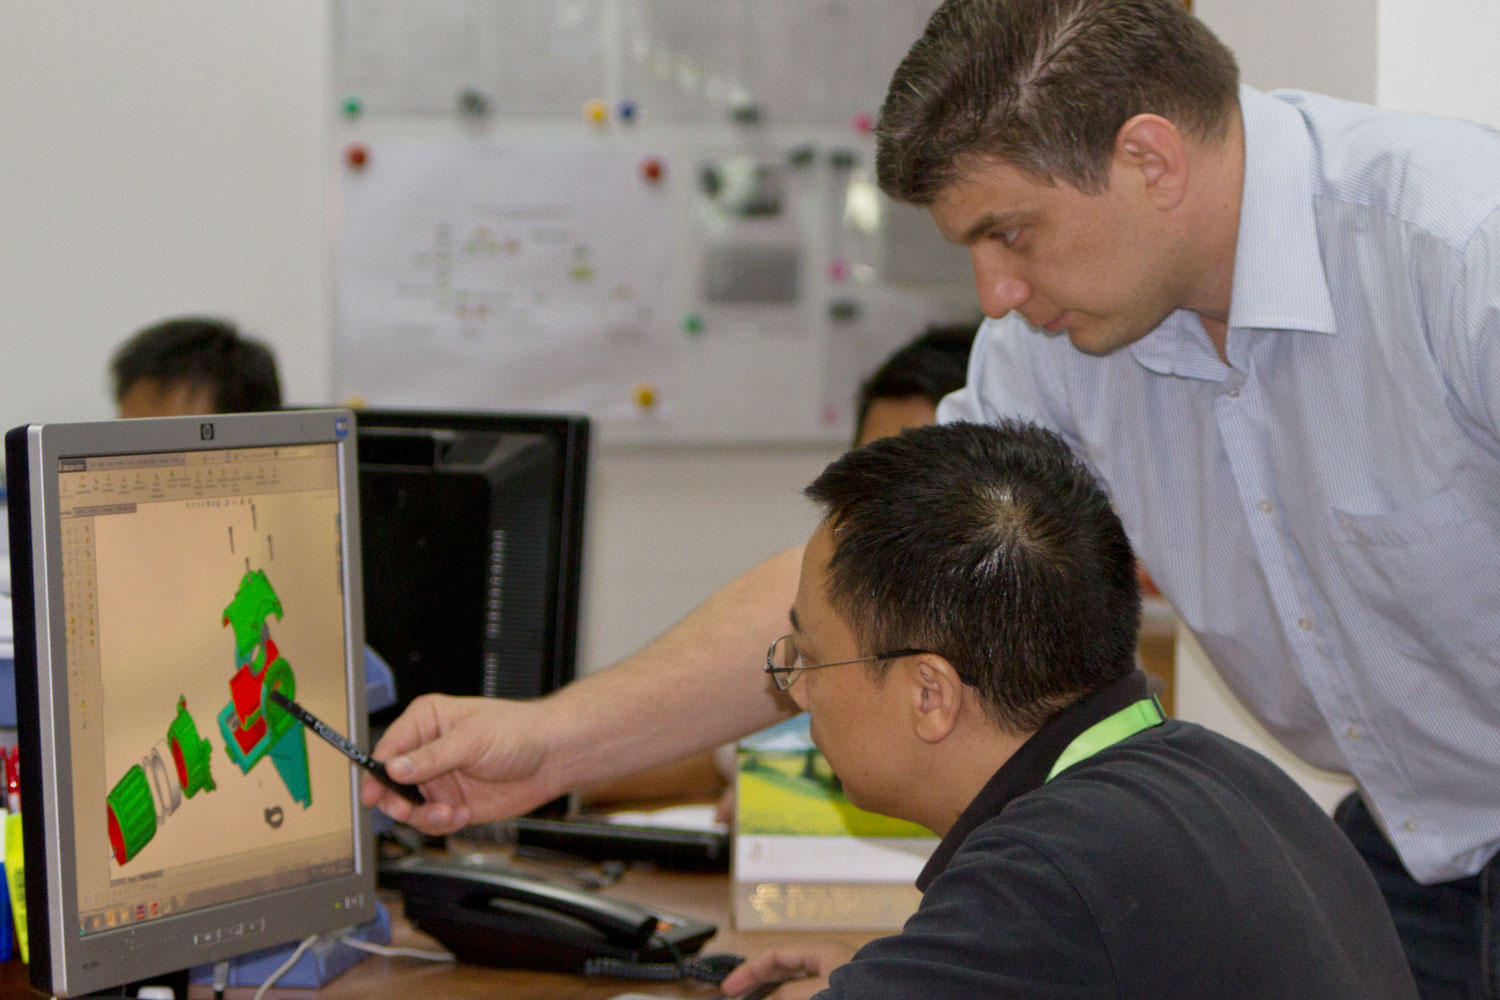 Research and development department in Tetro, China, 2 men near a computer looking at a 3D part